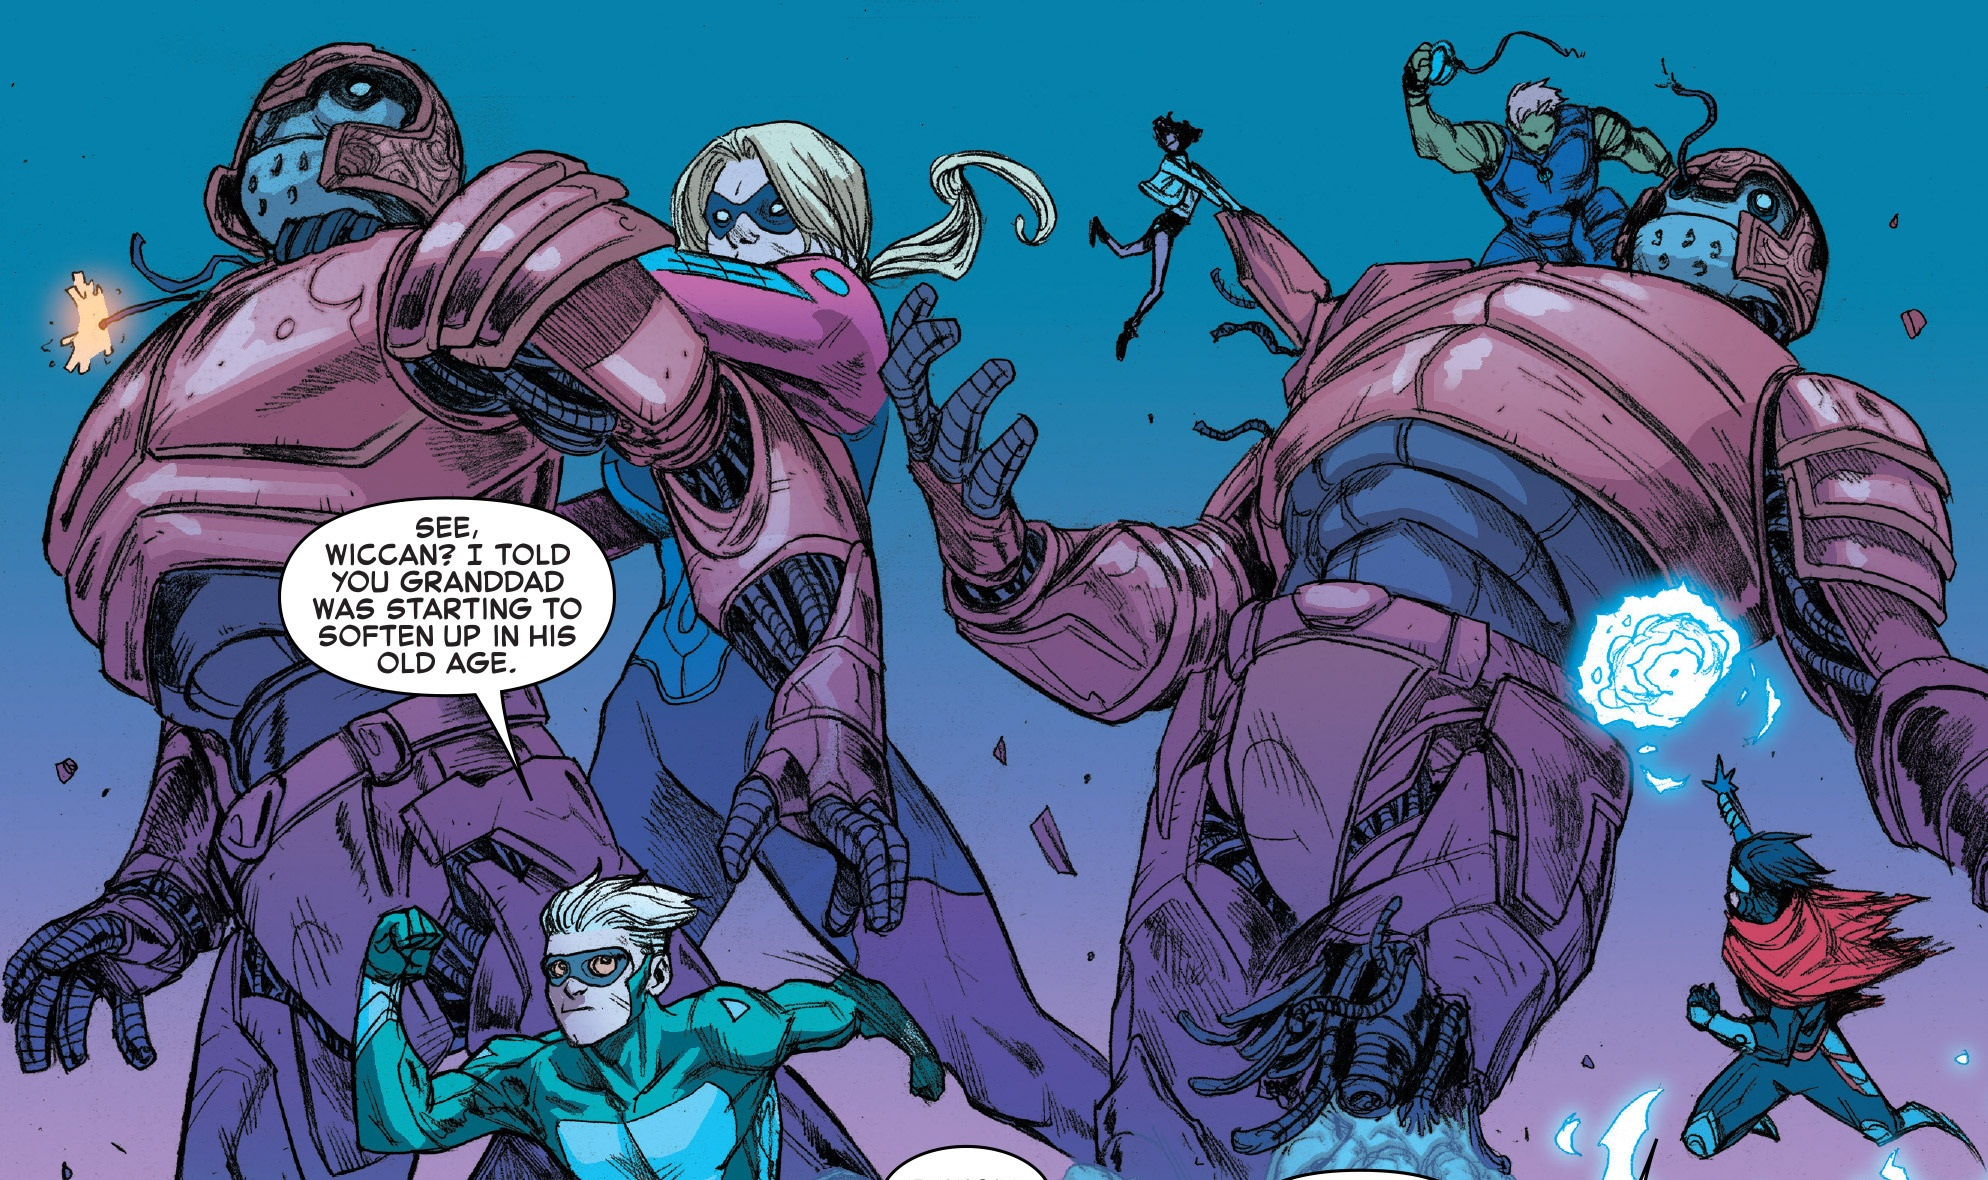 Young Avengers (Earth-58163)